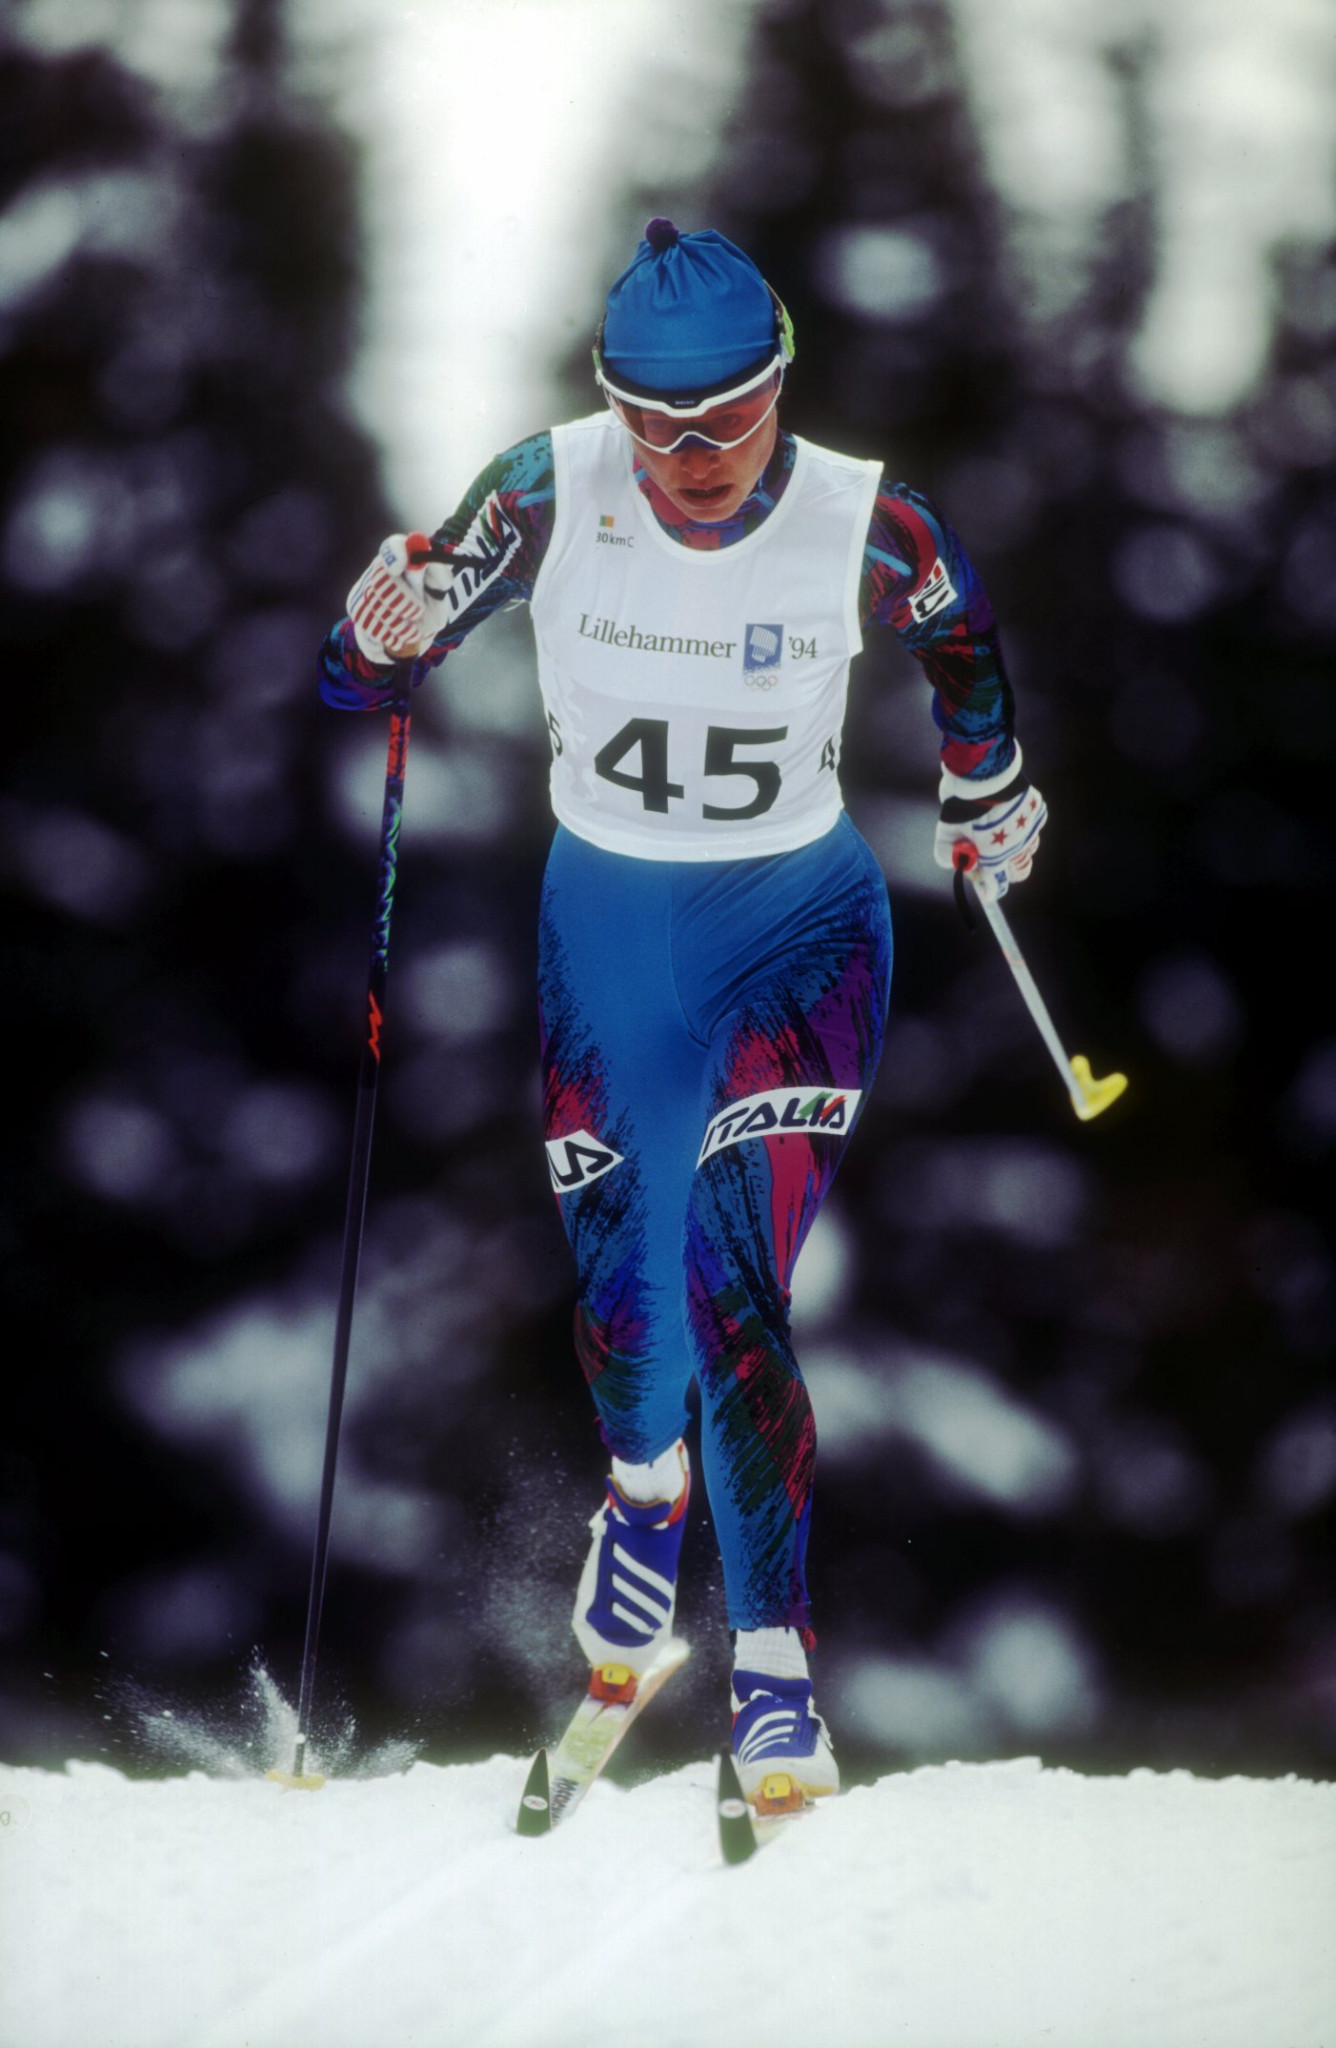 Manuela Di Centa won two gold medals at the 1994 Winter Olympic Games in Lillehammer ©Getty Images/Clive Brunskill/ALLSPORT